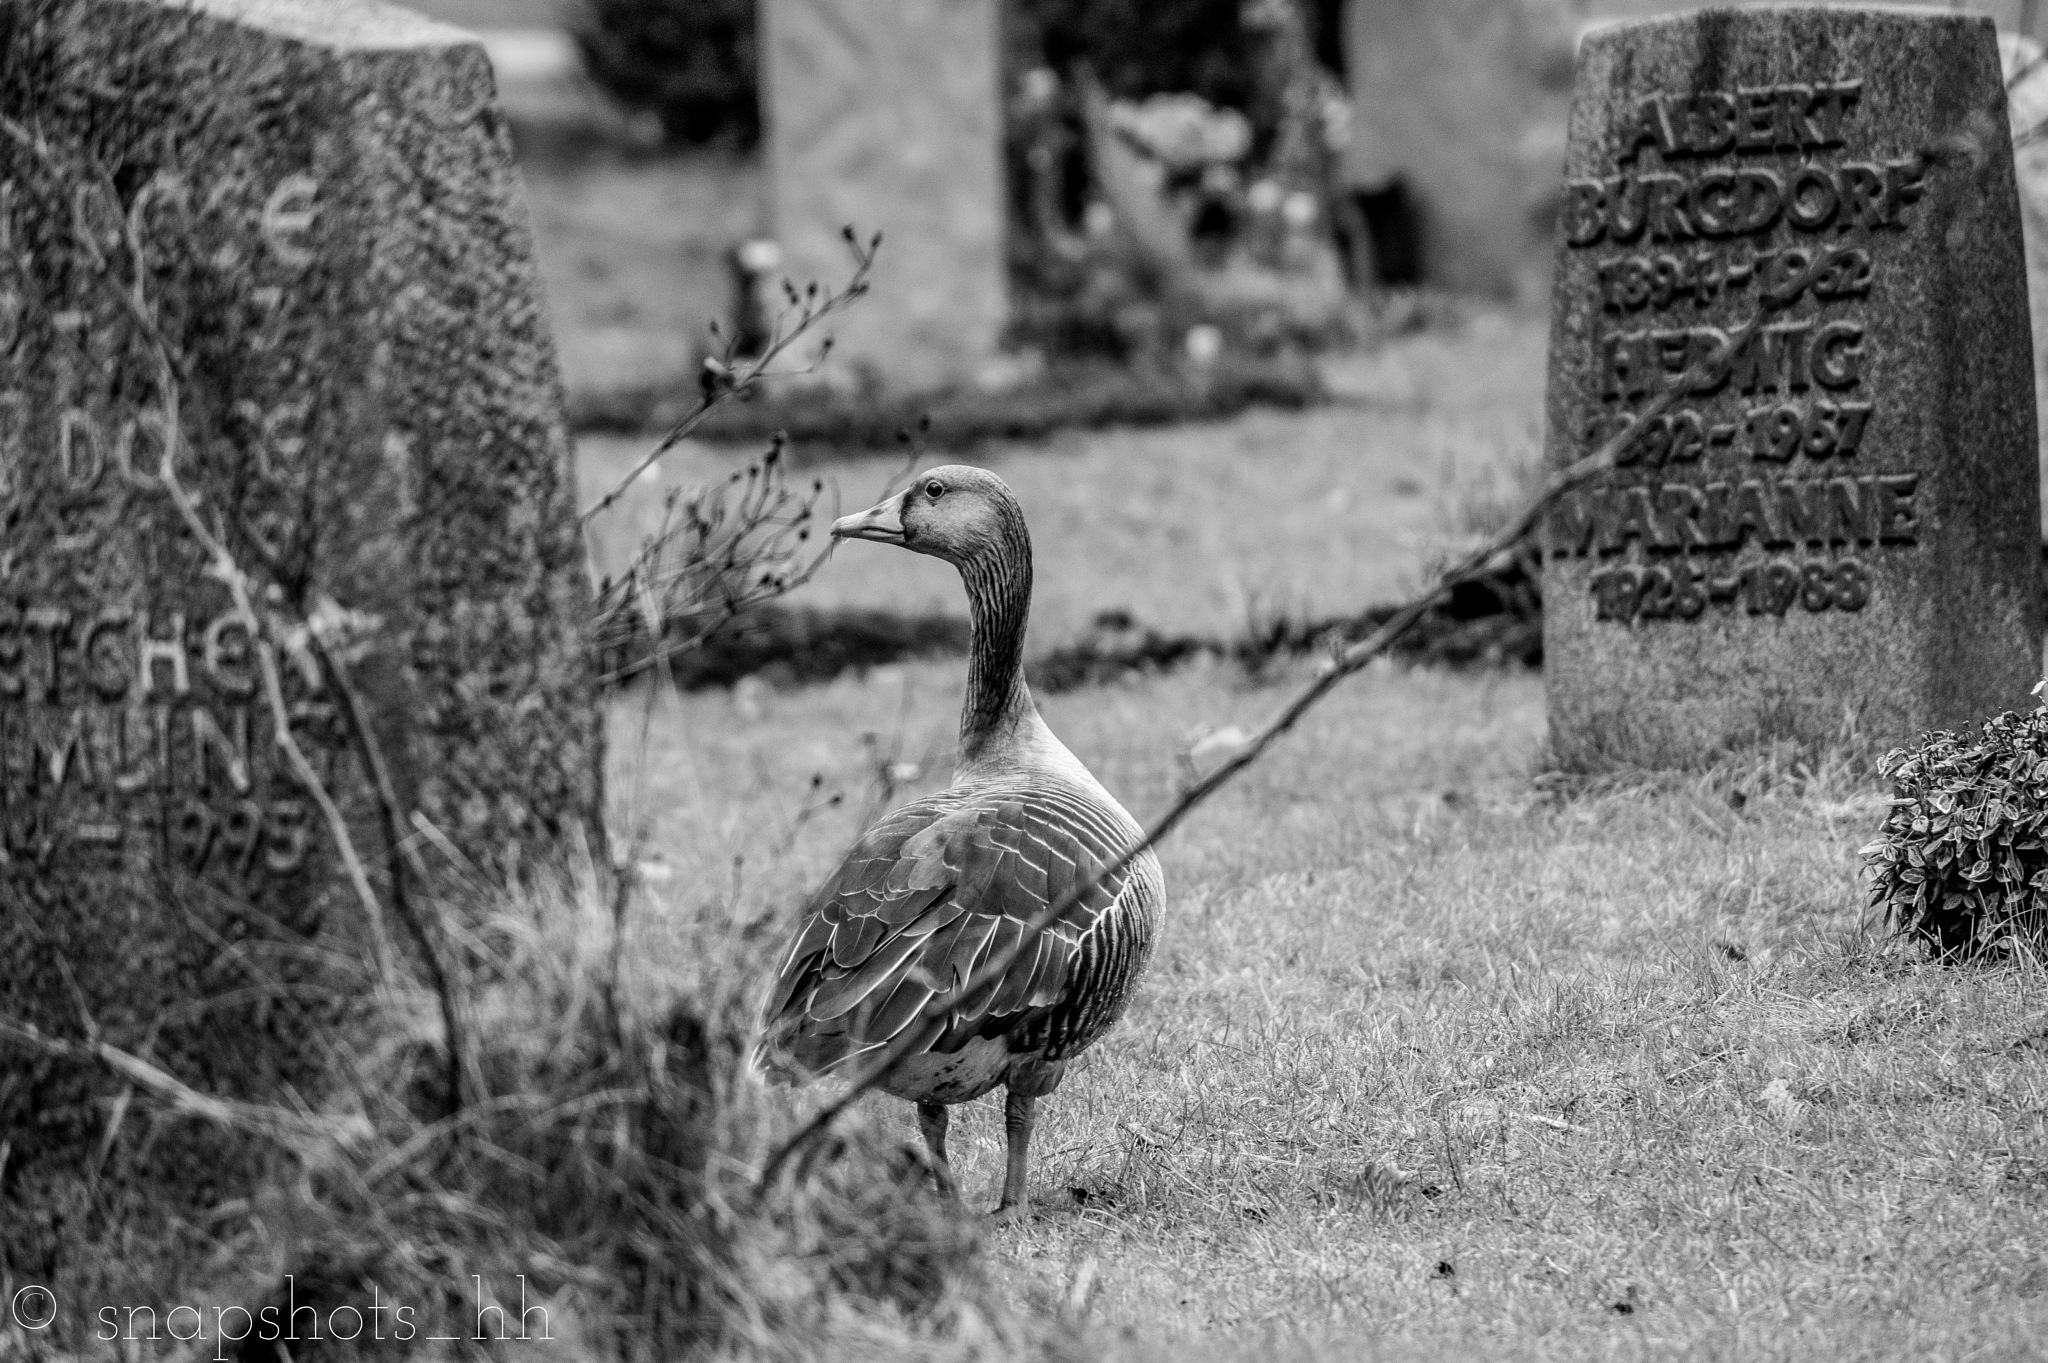 Goose on the cemetary by Snapshots_HH